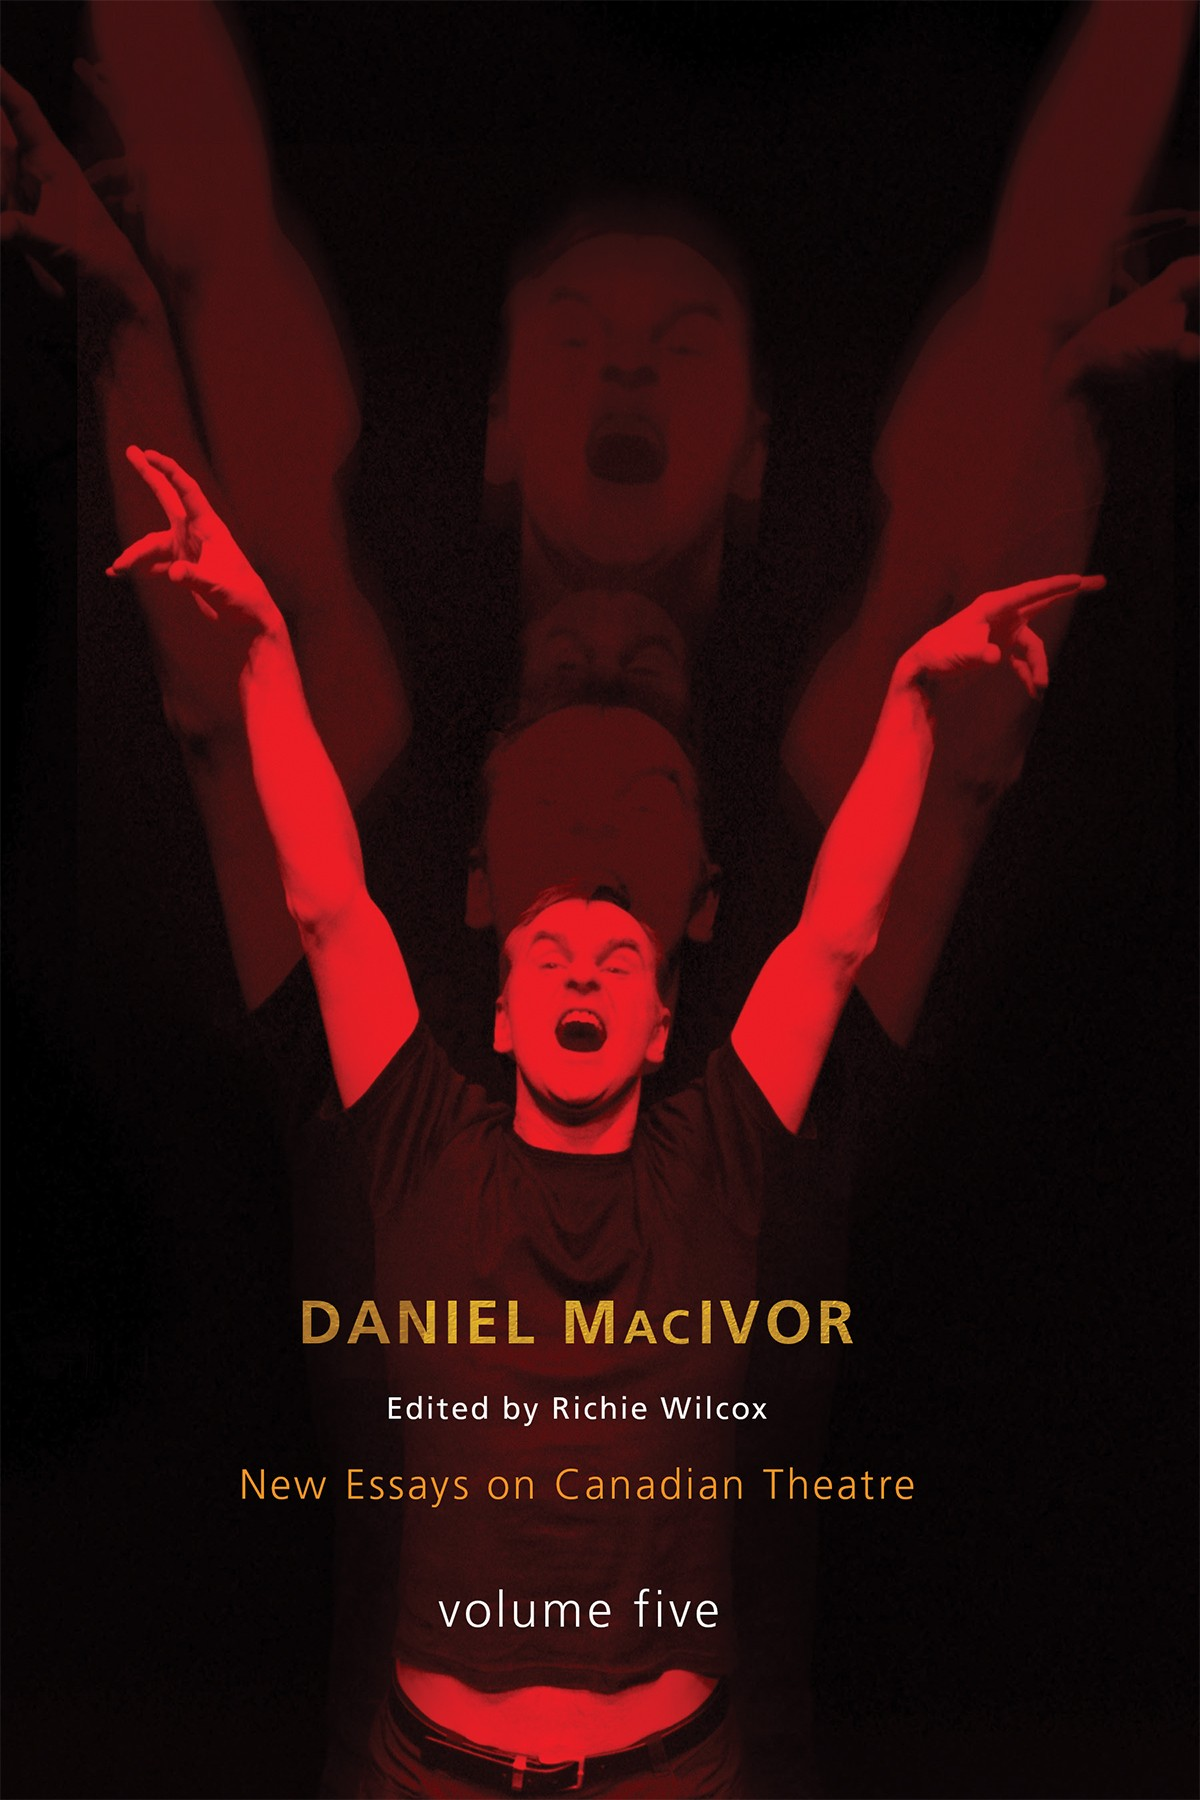 theatre essays daniel macivor new essays on canadian theatre print  daniel macivor new essays on canadian theatre print new daniel macivor new essays on canadian theatre student nurse essay on infection control